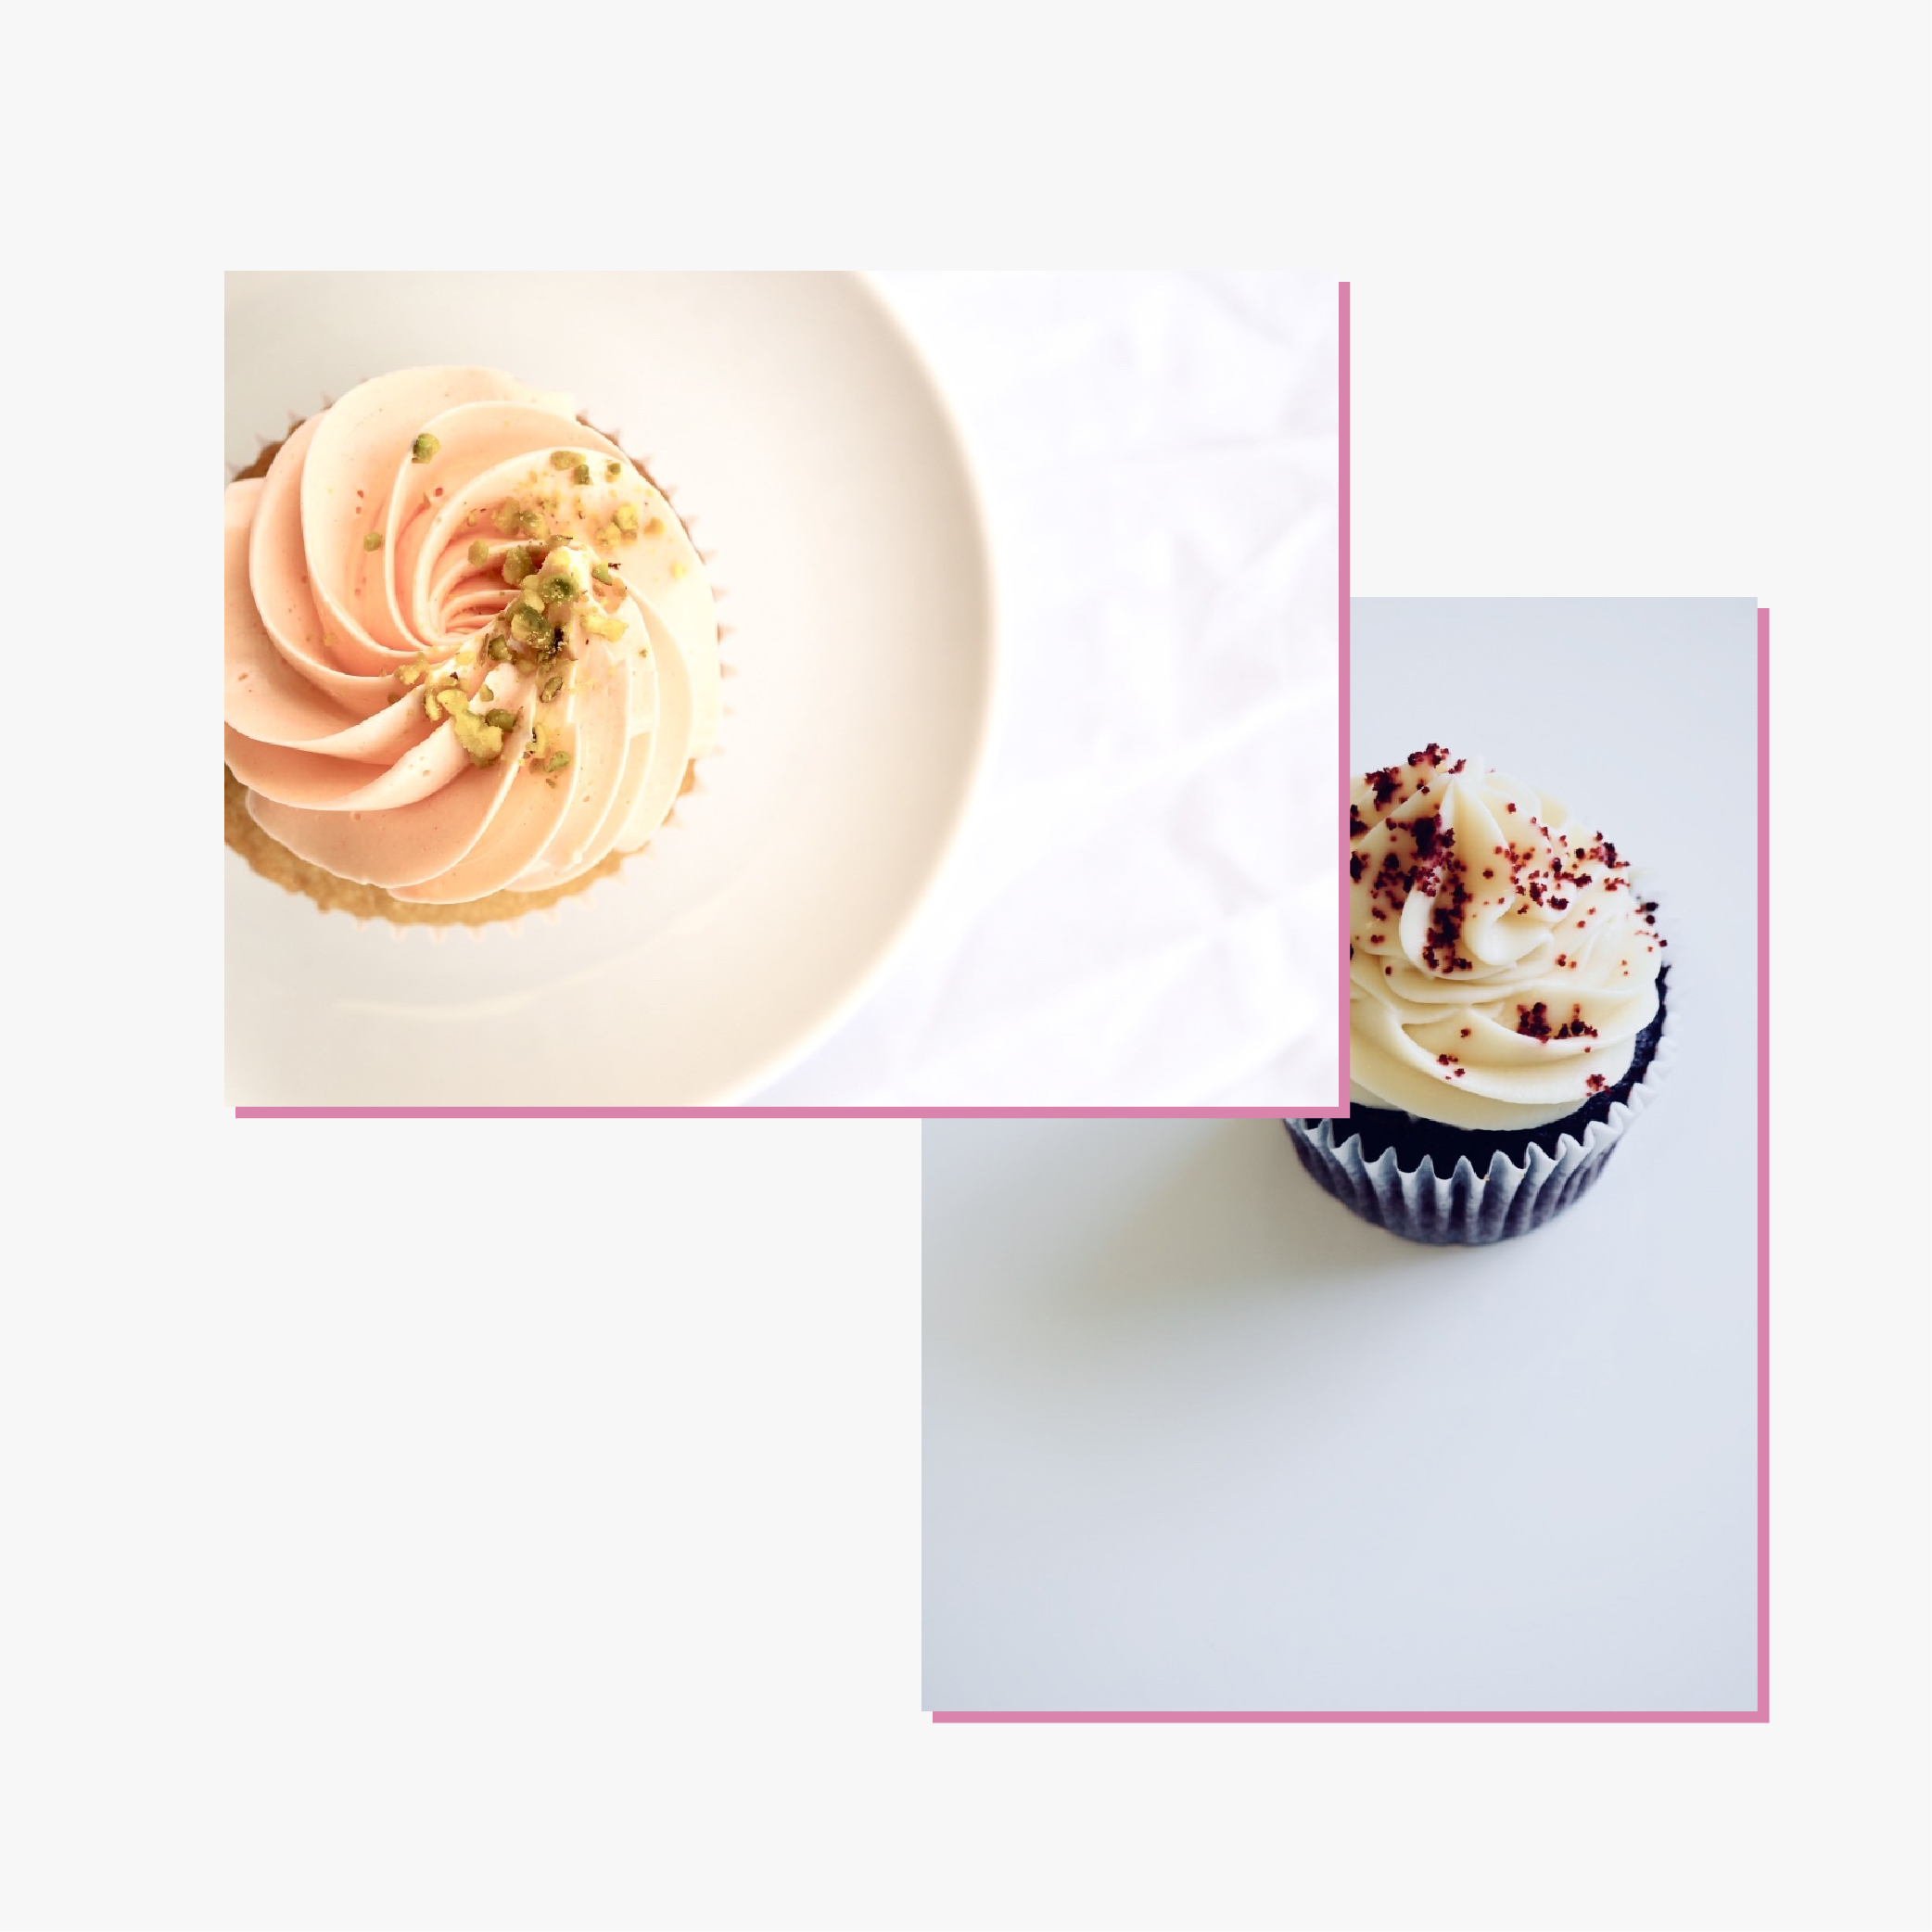 Cupcakes Stock Photography Plush Design Studio Coffs Harbour Promotional images.jpg